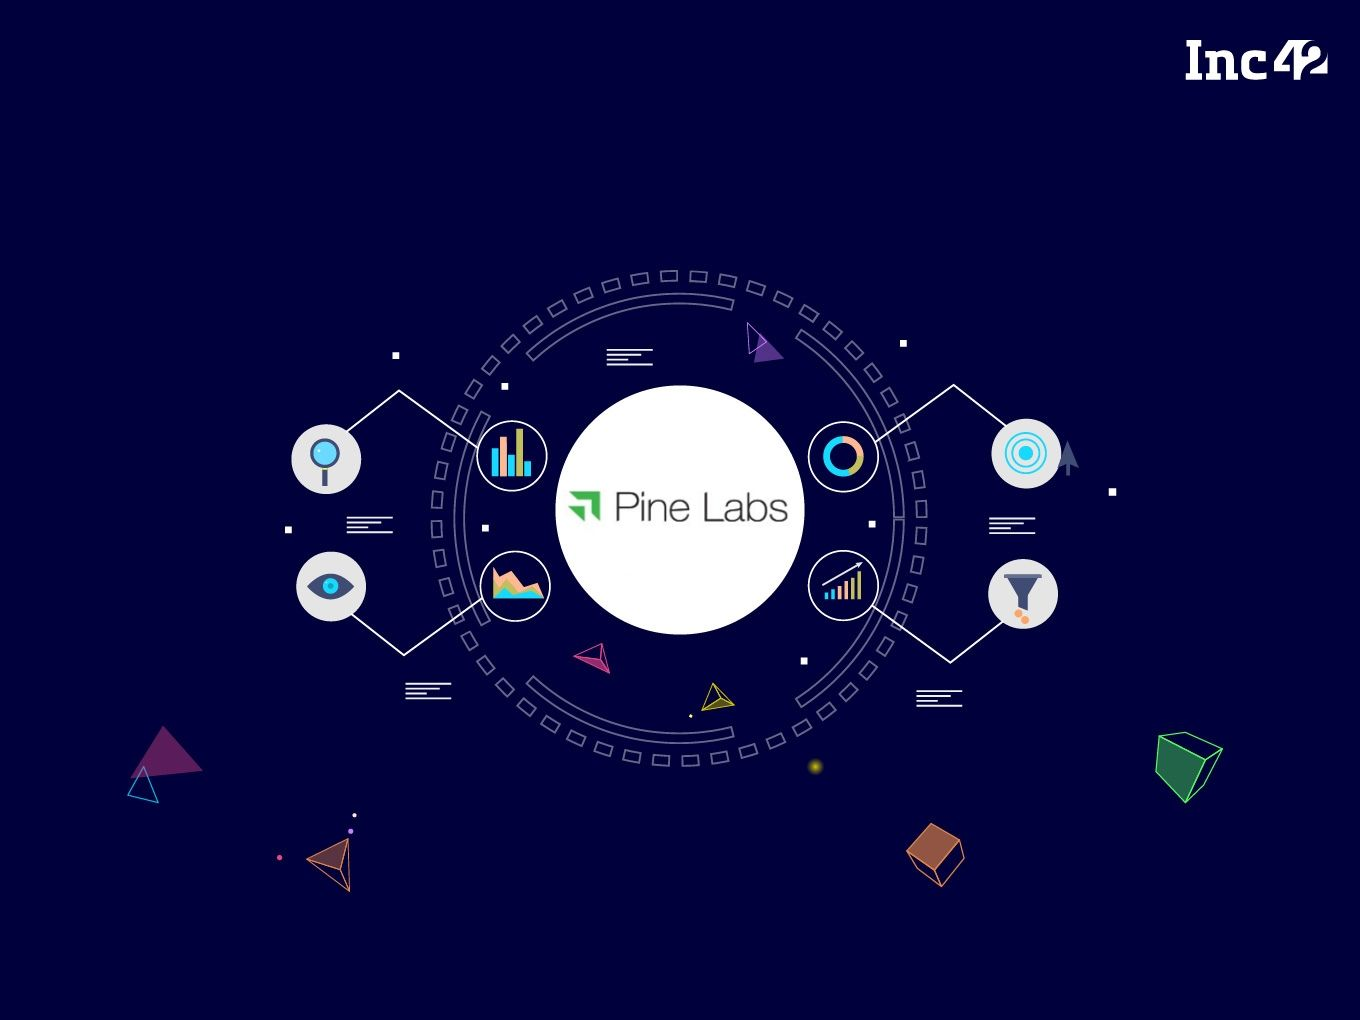 Pine Labs Suffers 4.46X Higher Losses With IPO On The Horizon